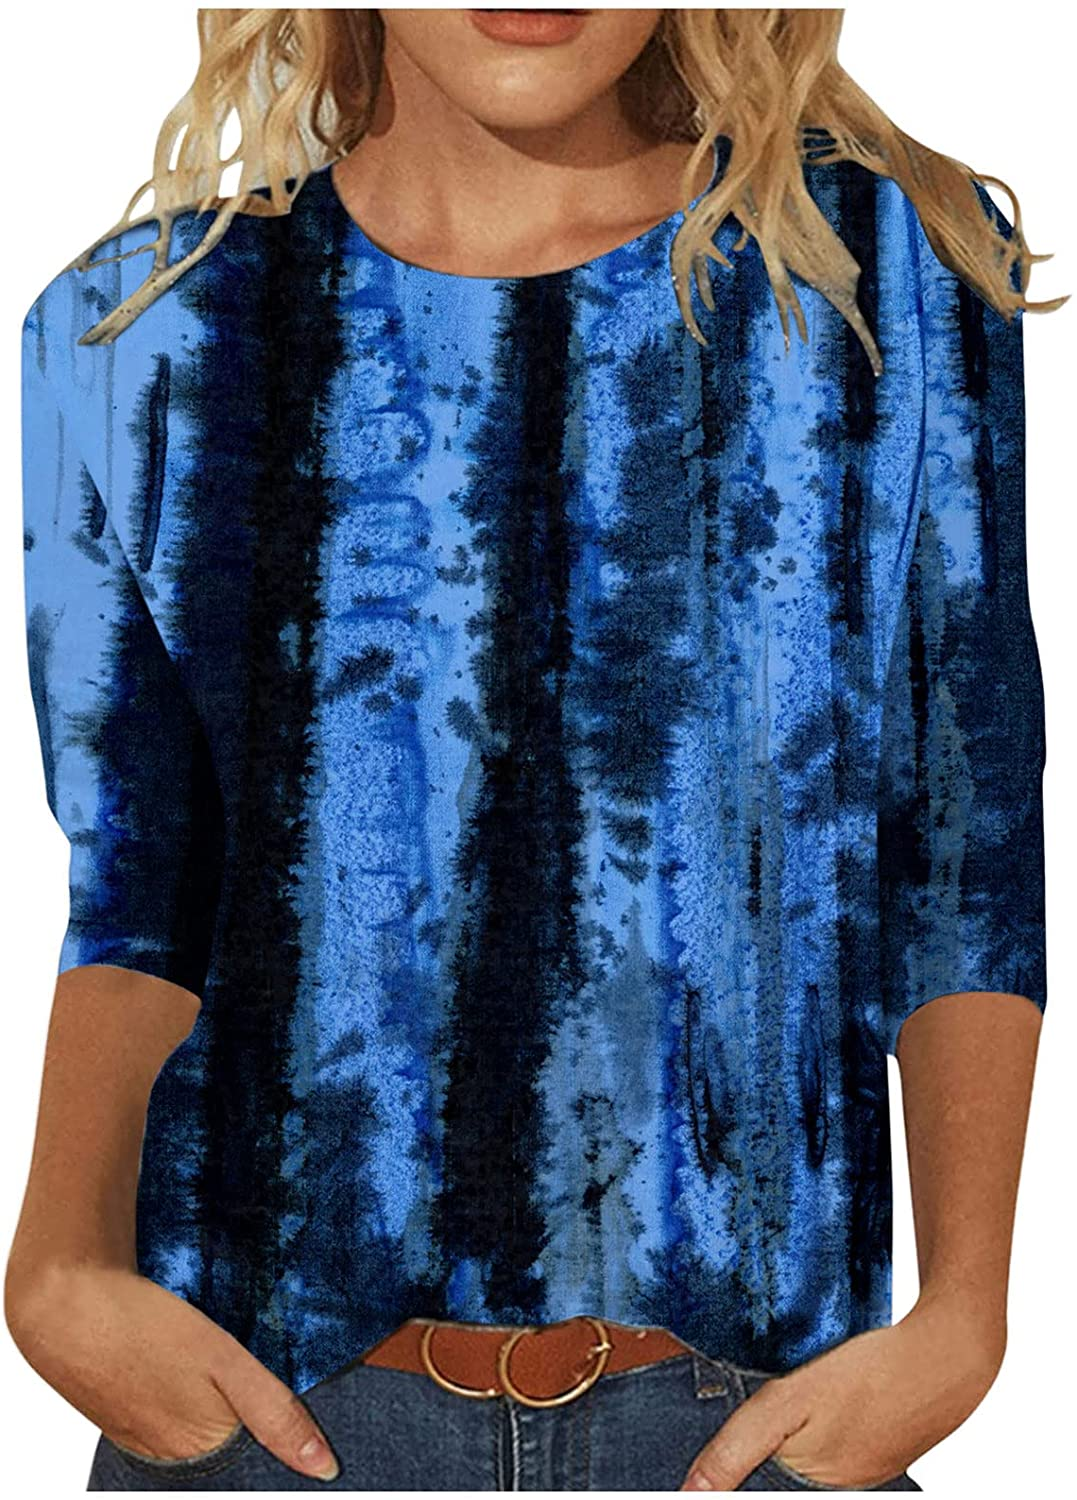 INNOVIERA Long Sleeve Shirts for Women Casual,Womens Floral Round Neck Sweatshirts Tops Loose Roundintage Tunic Blouses